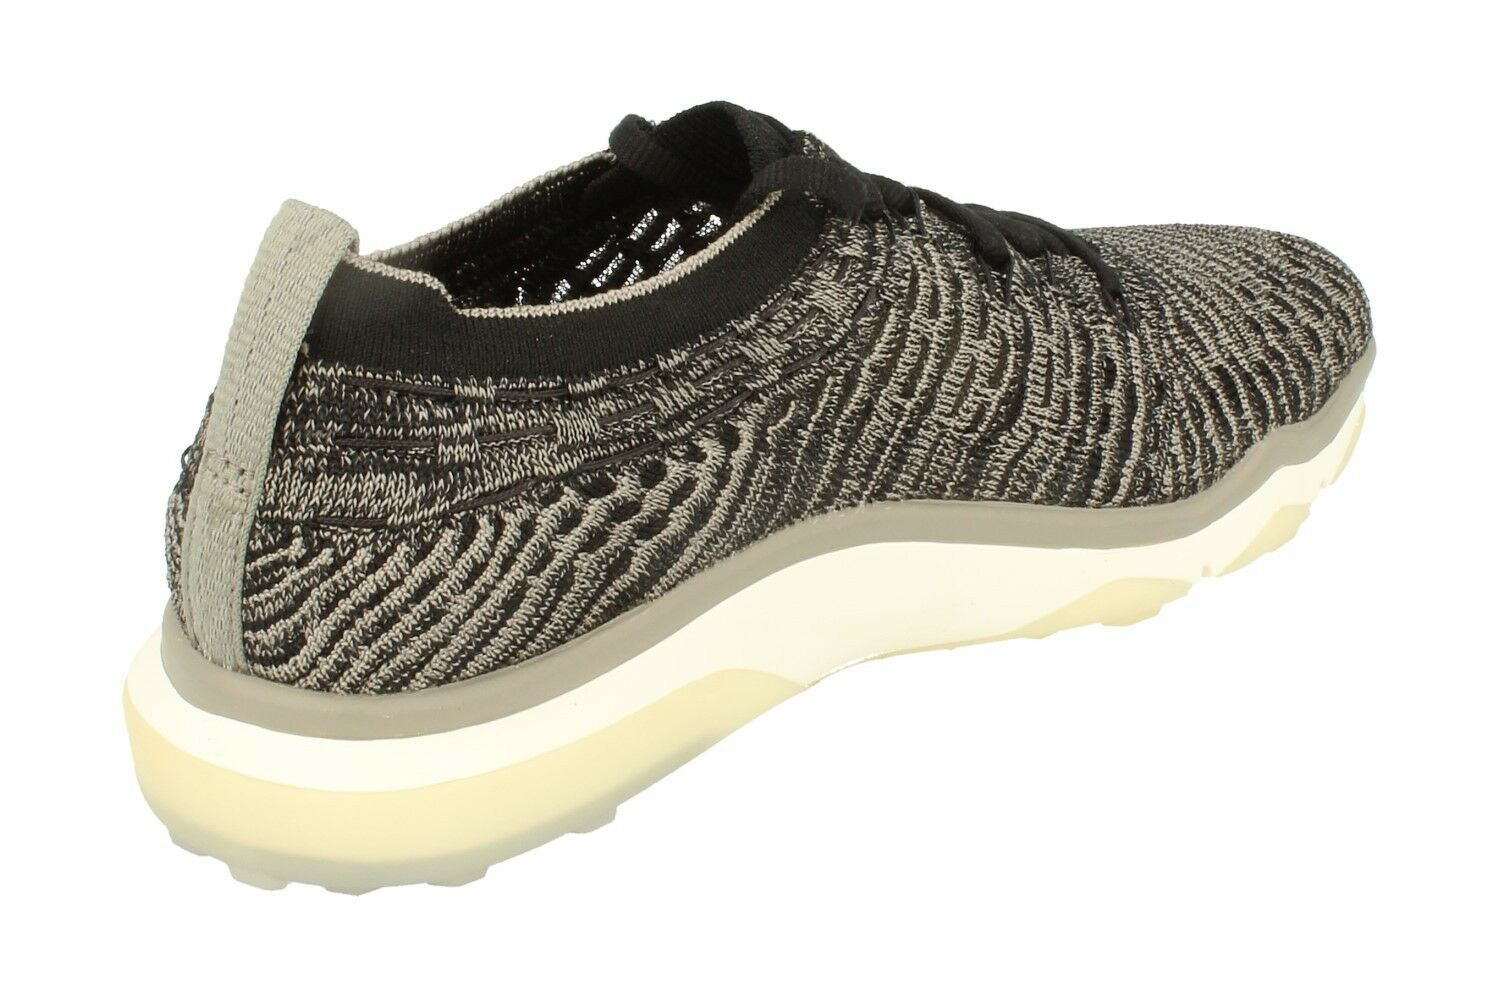 Nikelab Air Zoom Fearless Flyknit Femme 001 fonctionnement Trainers 878558 chaussures 001 Femme a5a896